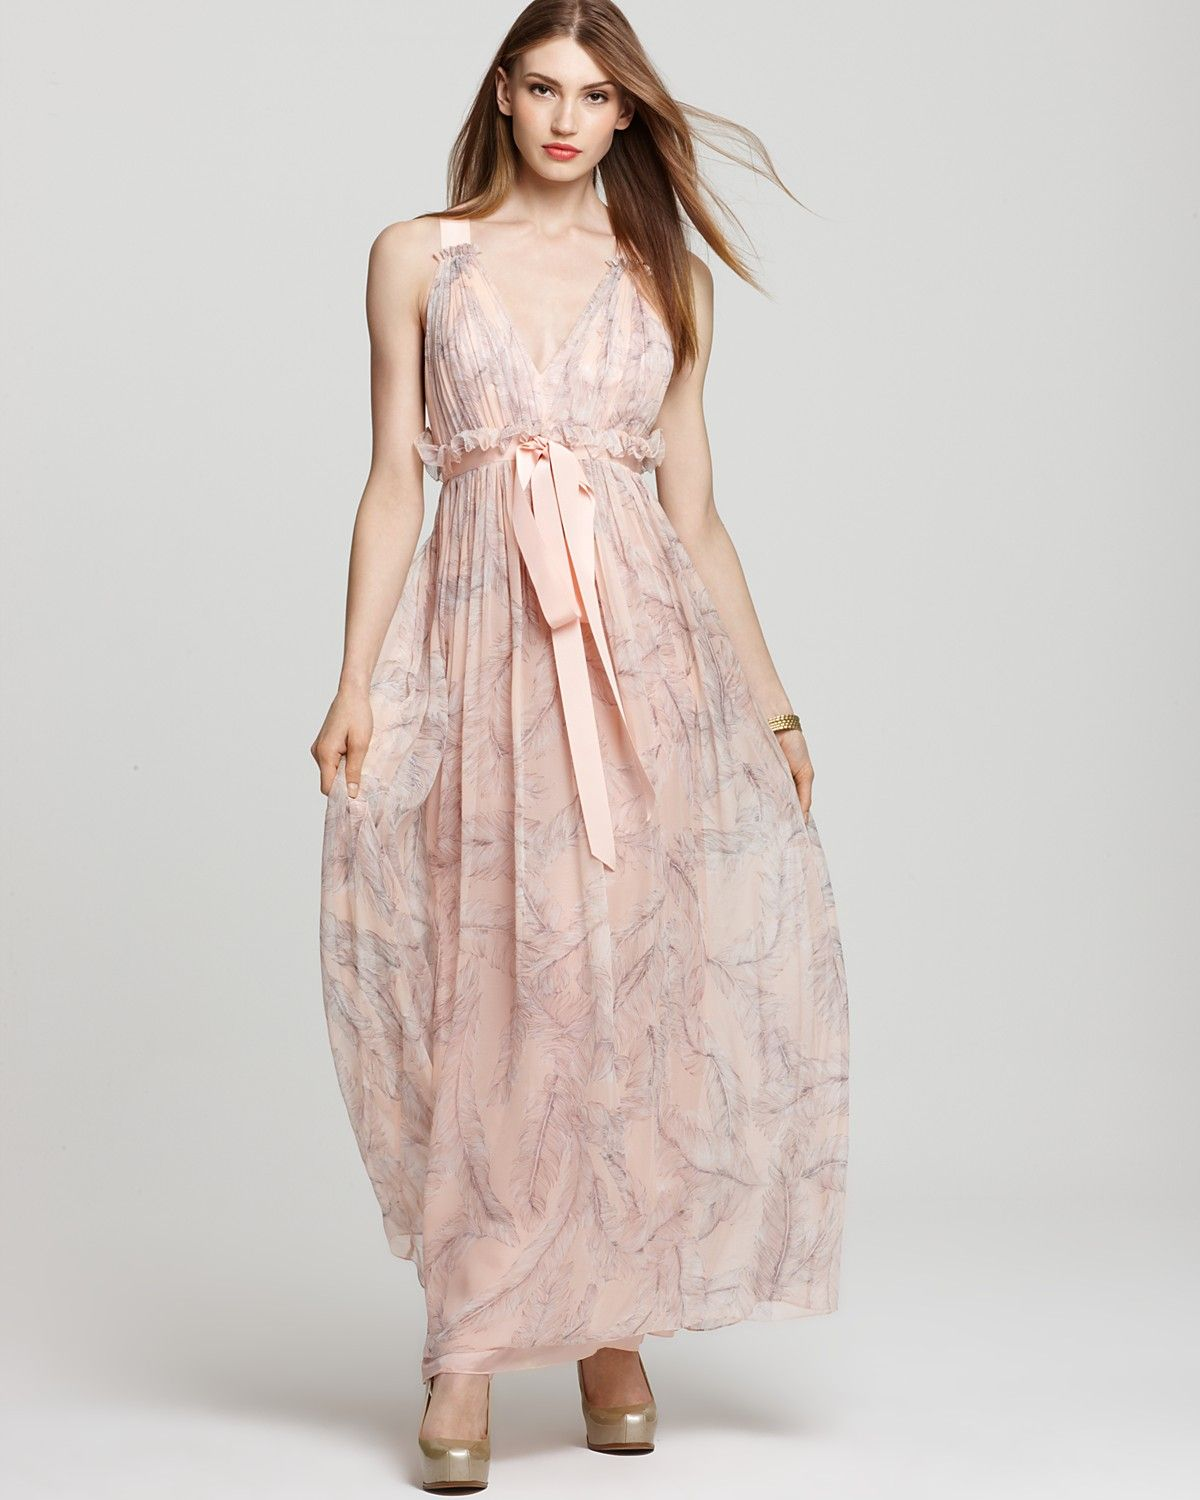 Jill Stuart Dresses Dress Gown Printed Belted